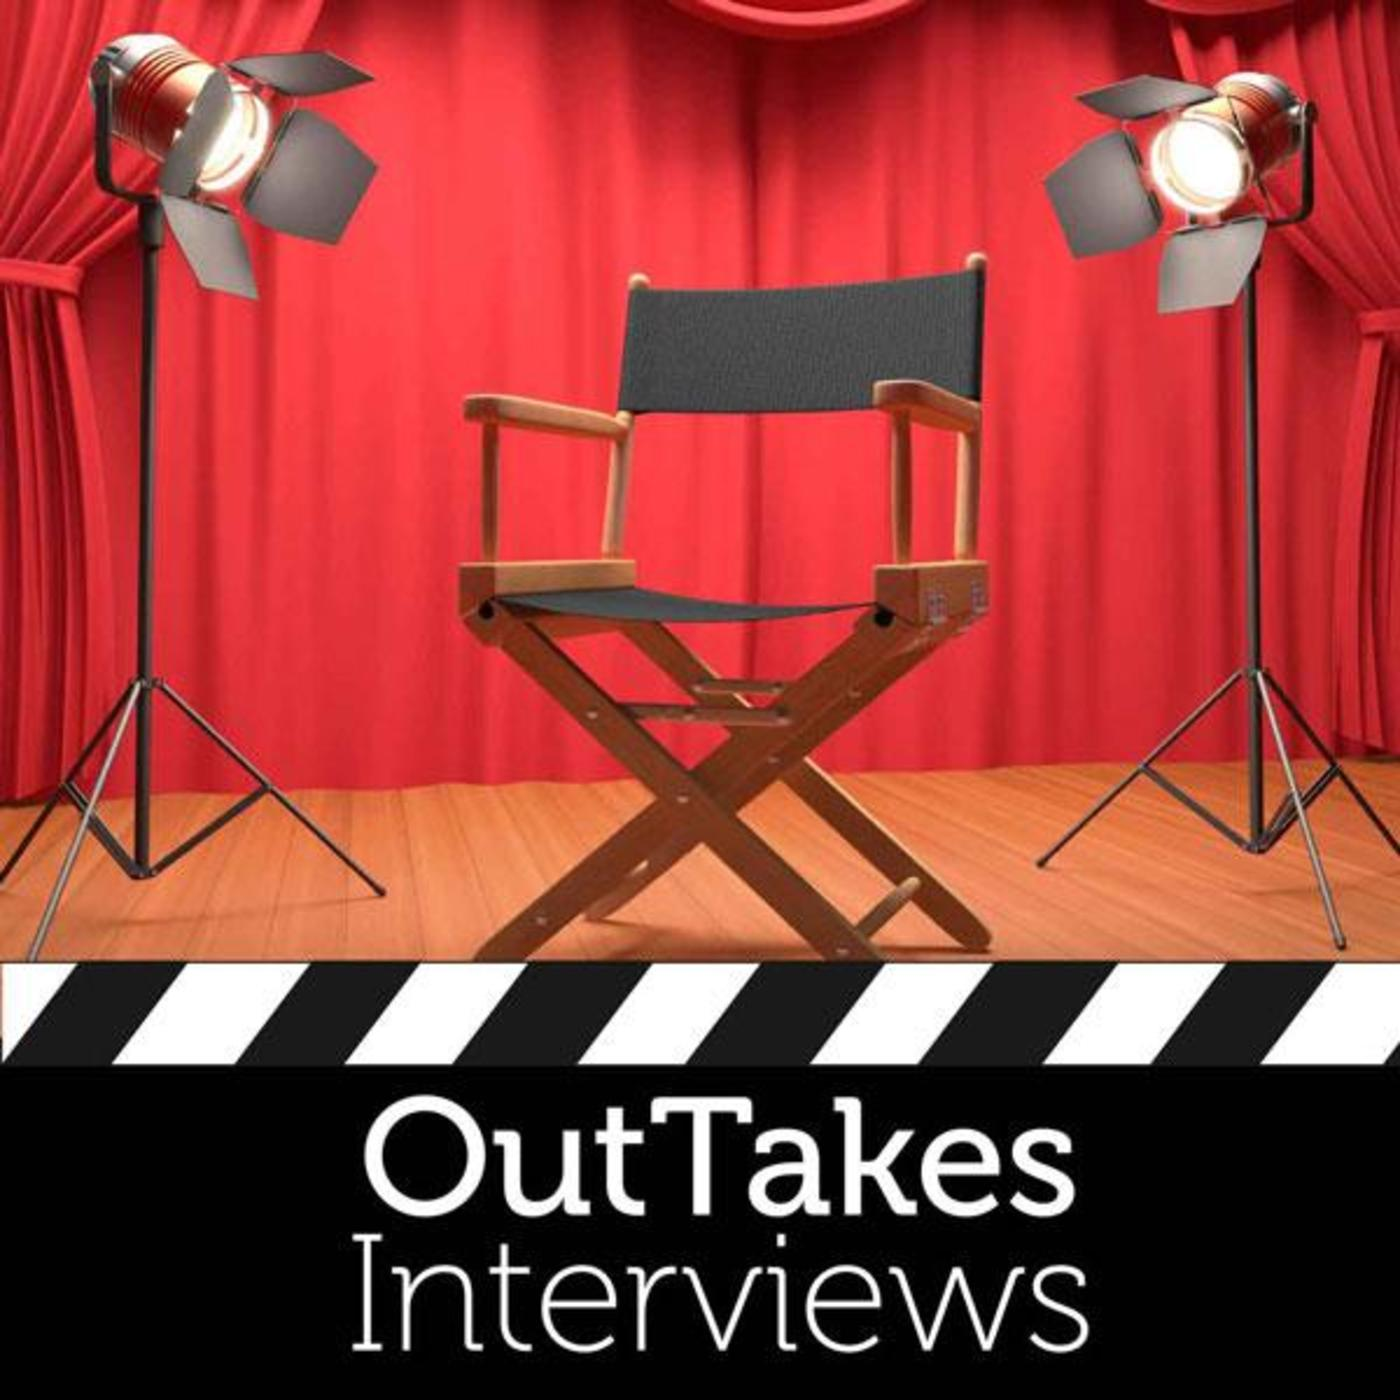 OutTakes Interviews